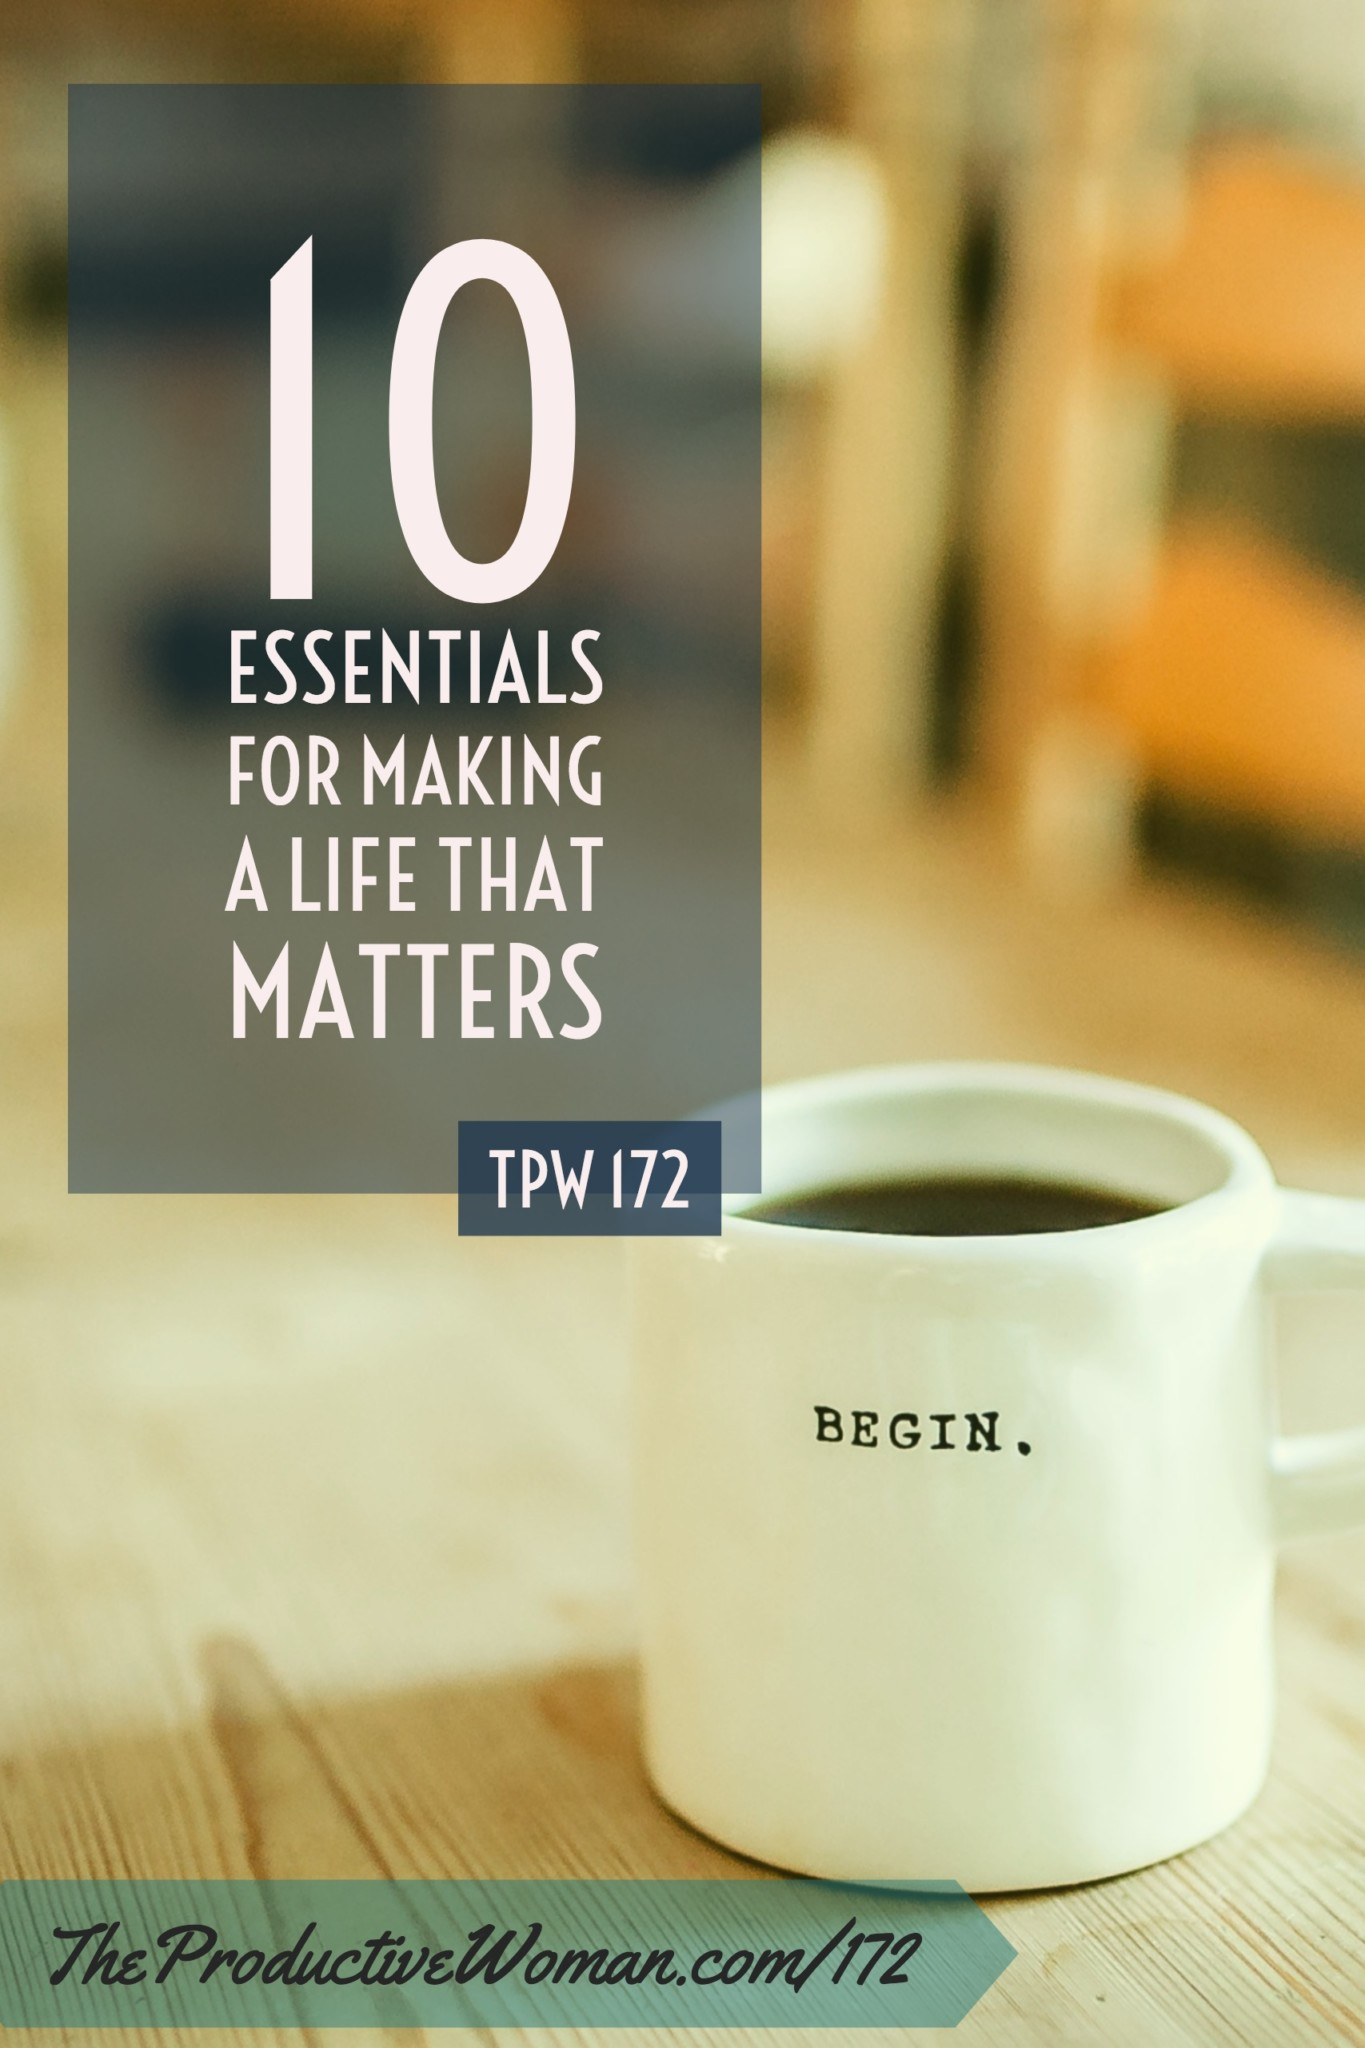 In episode 172 of The Productive Woman podcast, we're looking at some of the essentials for making a life that matters. Find more at TheProductiveWoman.com/172.